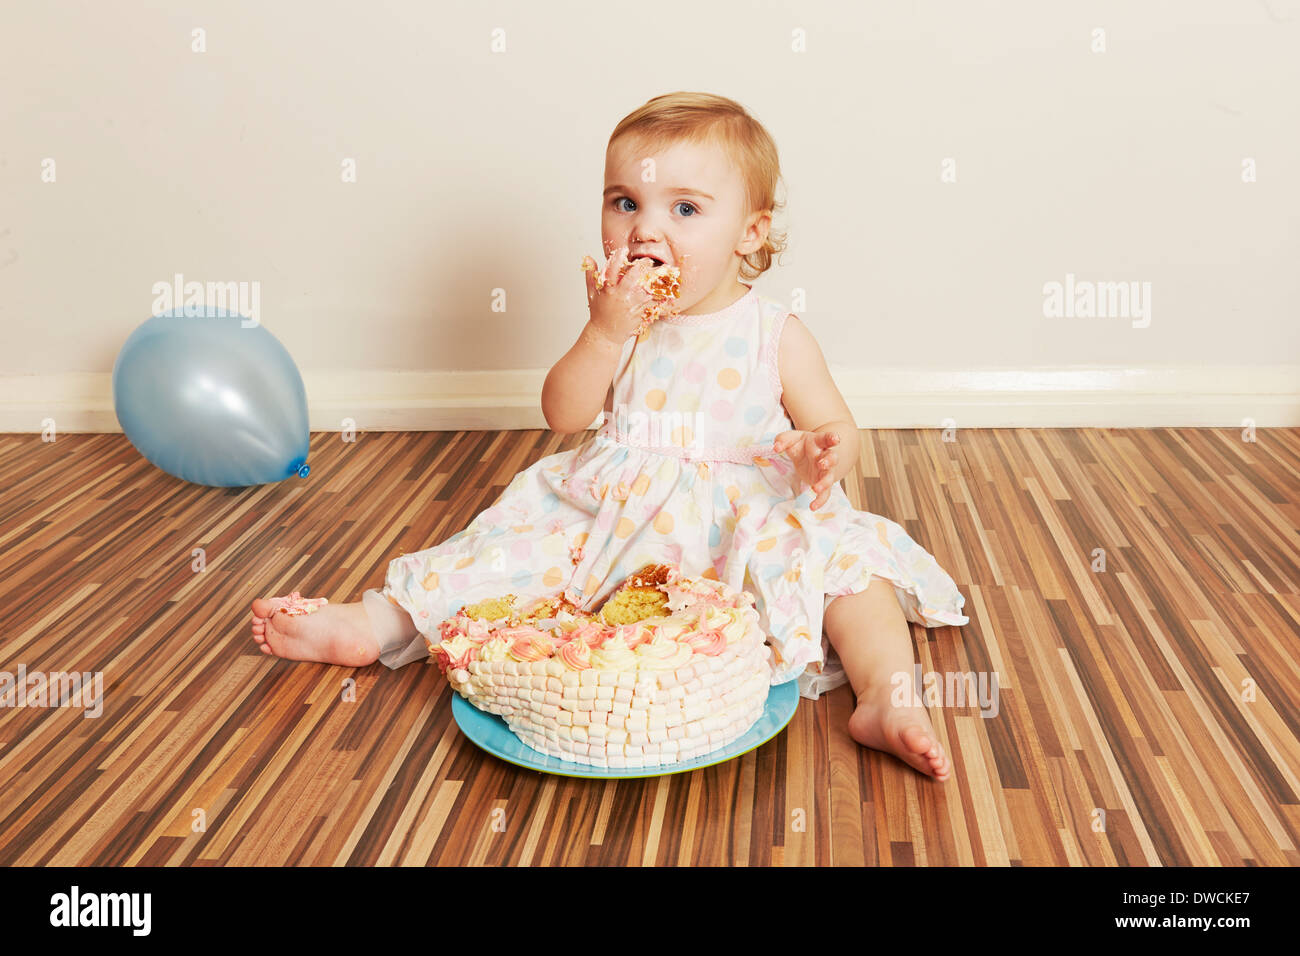 Toddler girl devouring birthday cake - Stock Image